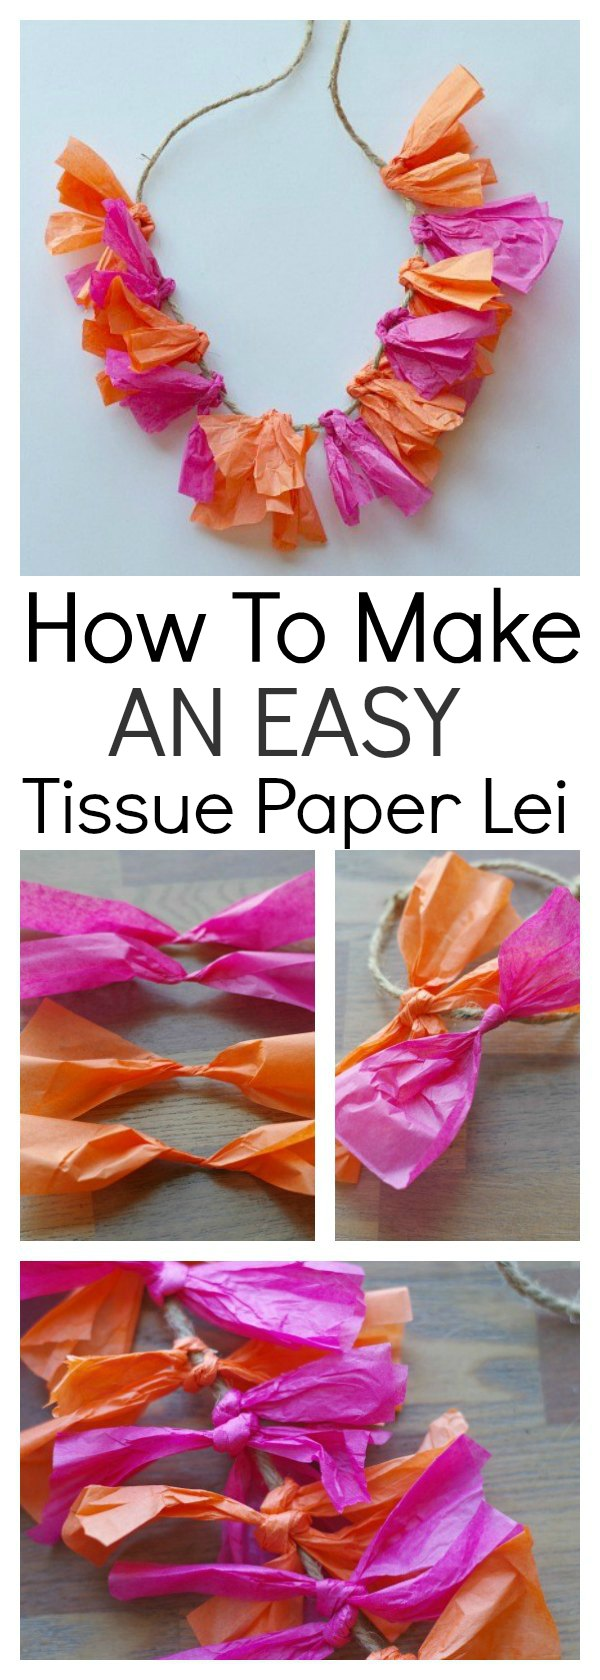 This tutorial shows a quick and easy way to make a tissue paper lei. It's perfect for summer parties, especially Hawaiian or pool party themes, and a craft that the kids can be involved in. It's bright, colourful and will be perfect for your summer entertaining.